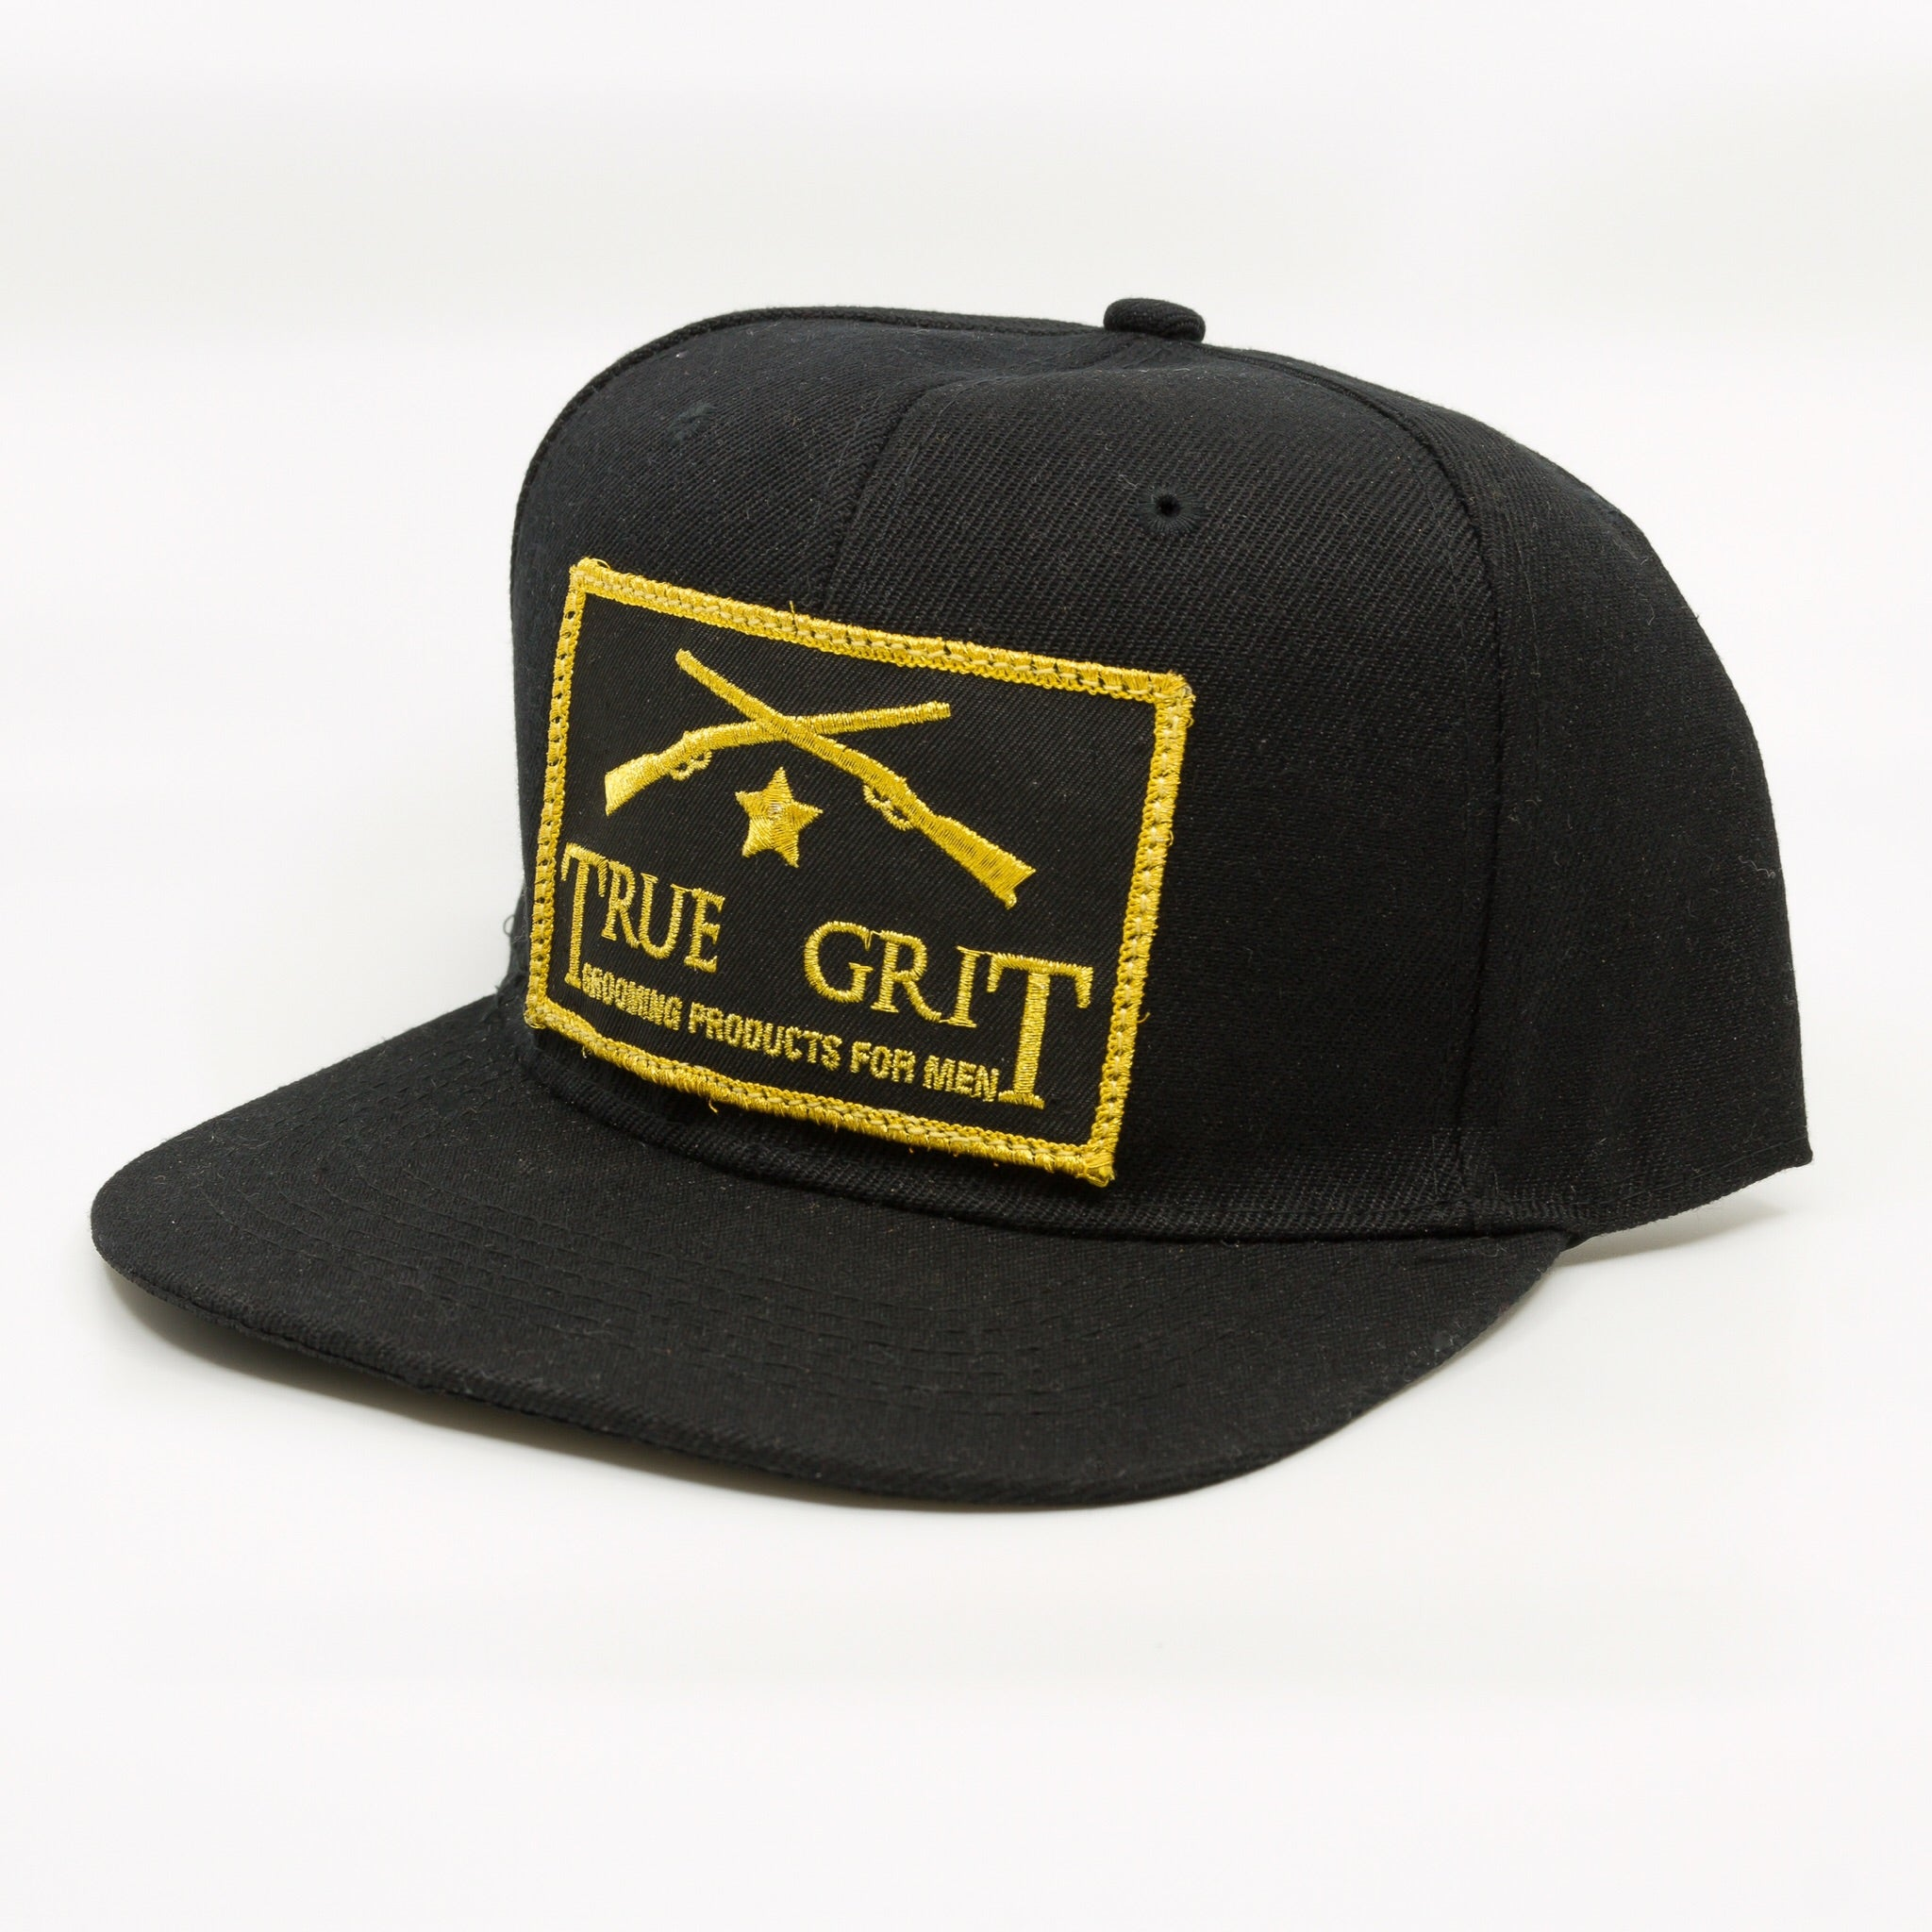 True Grit SnapBack Hat